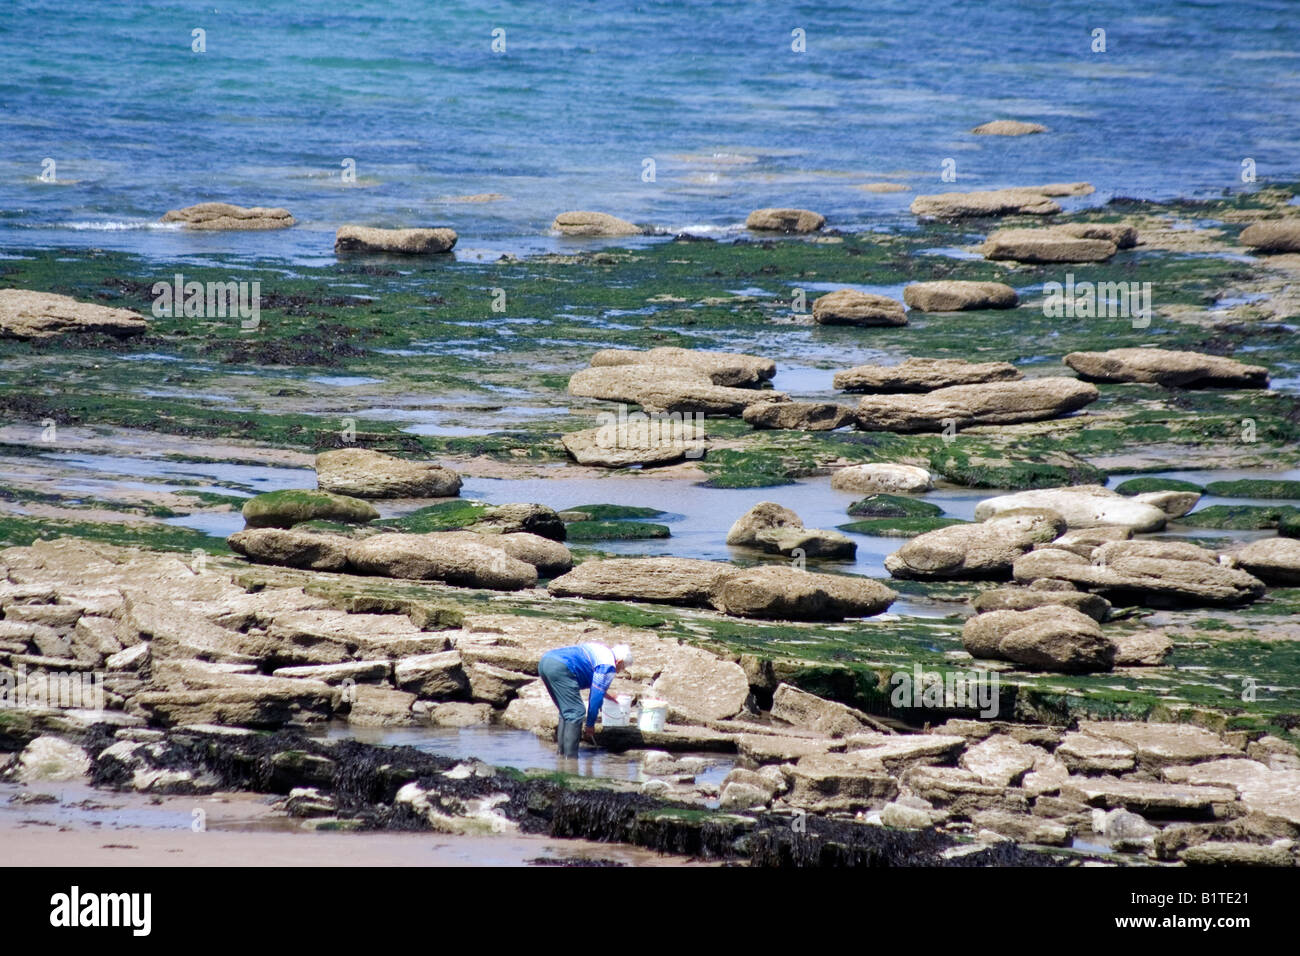 beach comber mussels worms English Channel La Manche pool Boulogne sur Mer France - Stock Image